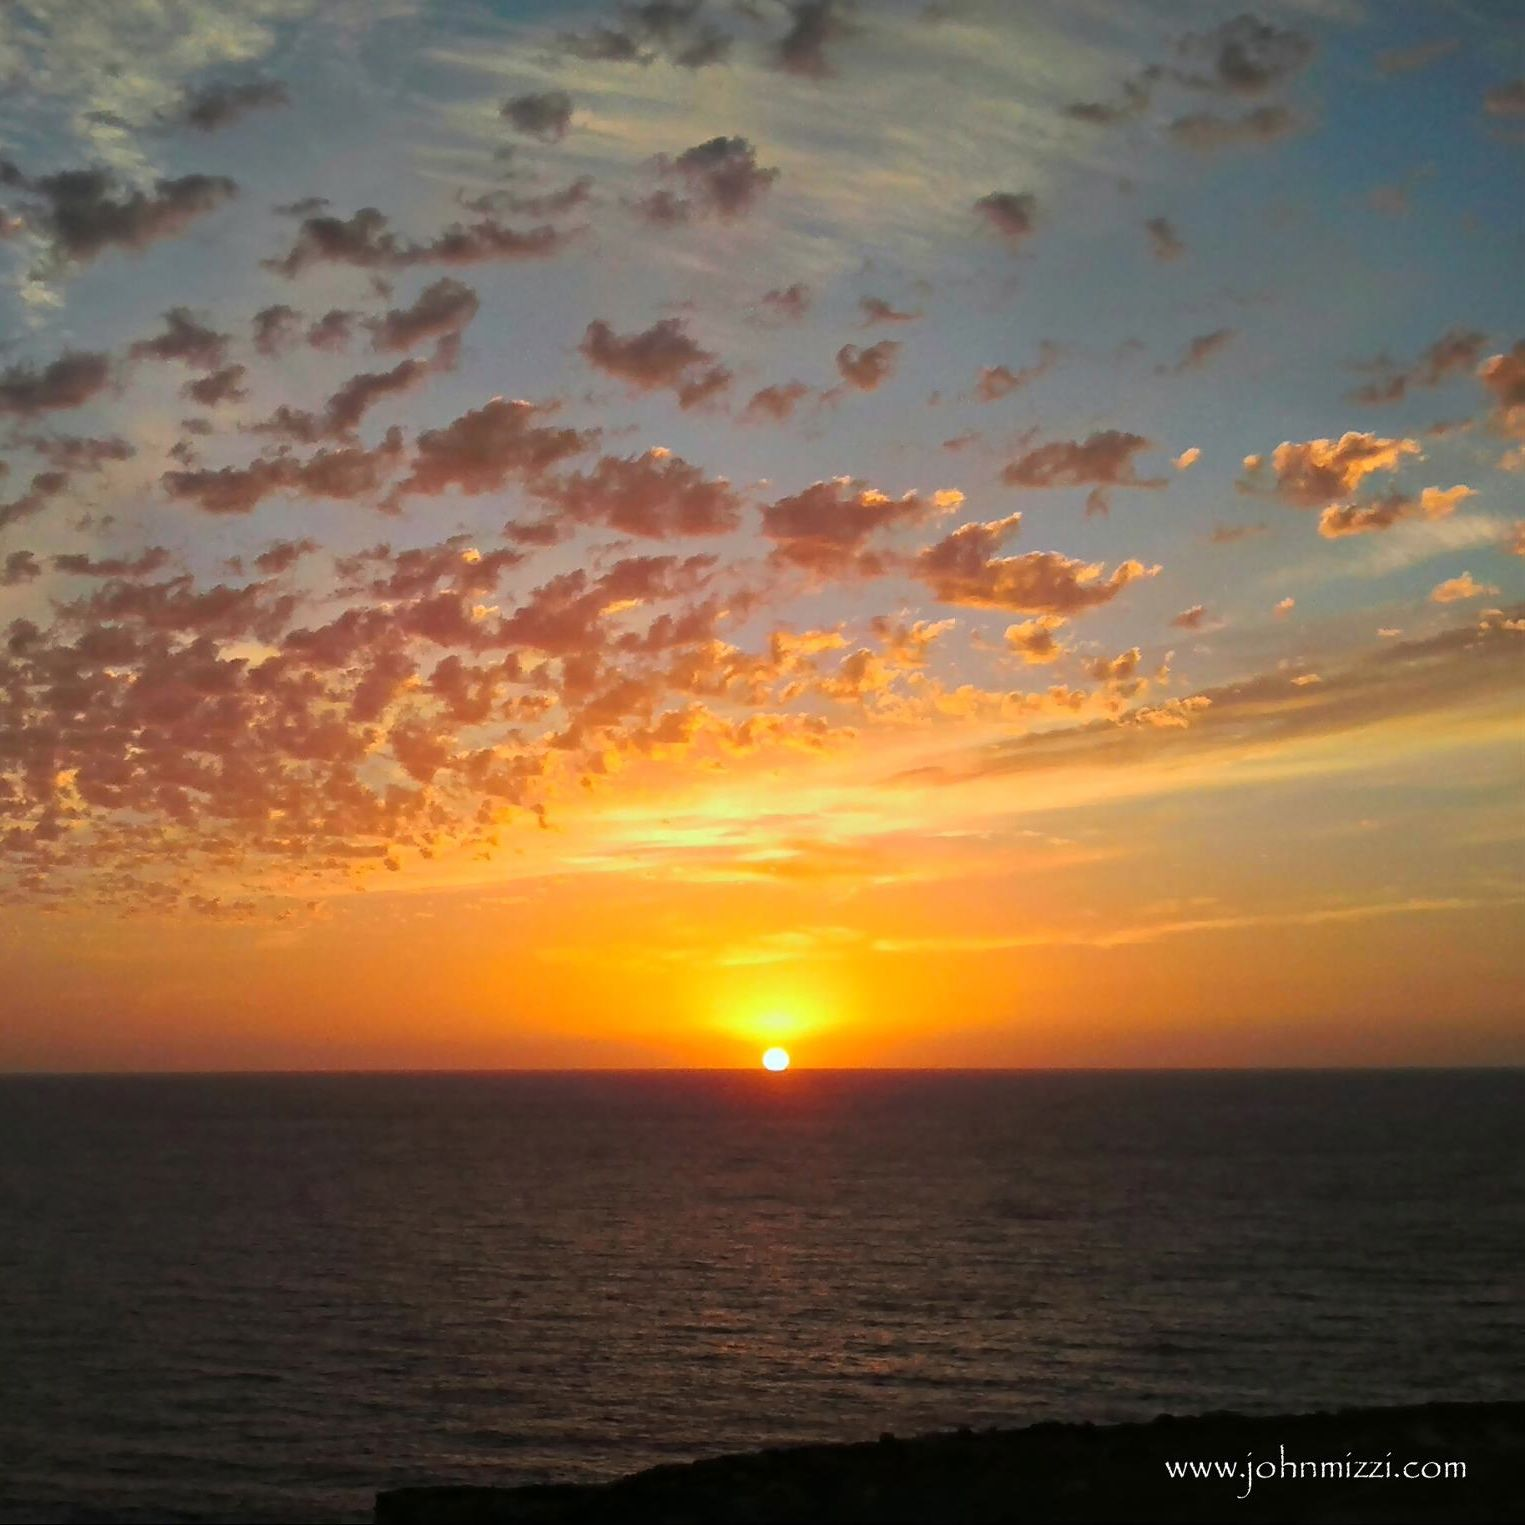 Sunset on Gozo (Malta) by EarthSky Facebook friend John Michael Mizzi.